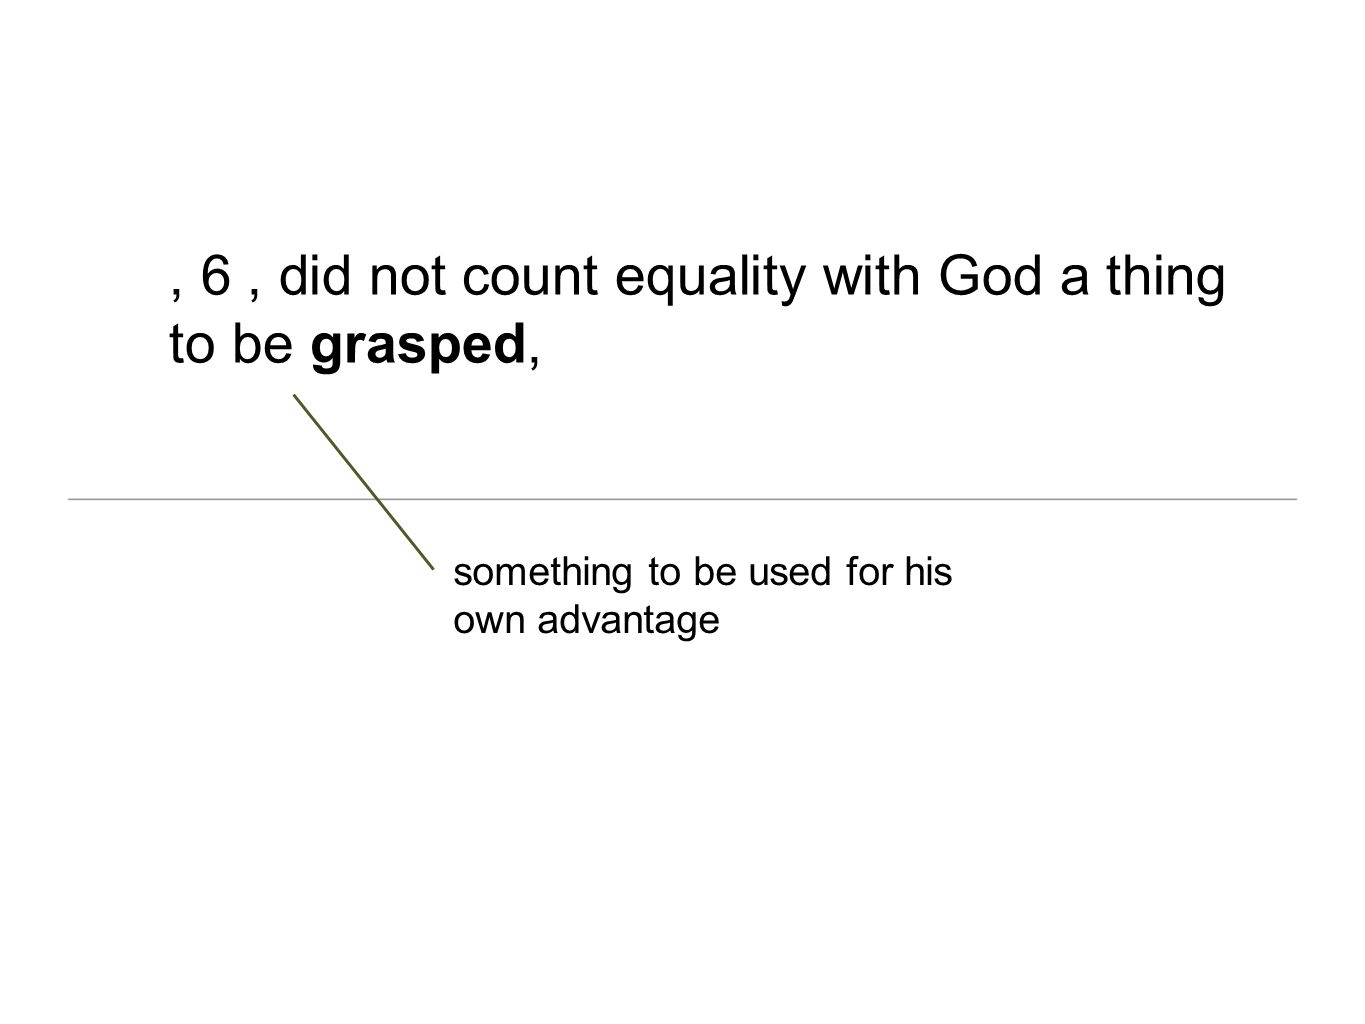 , 6, did not count equality with God a thing to be grasped, something to be used for his own advantage